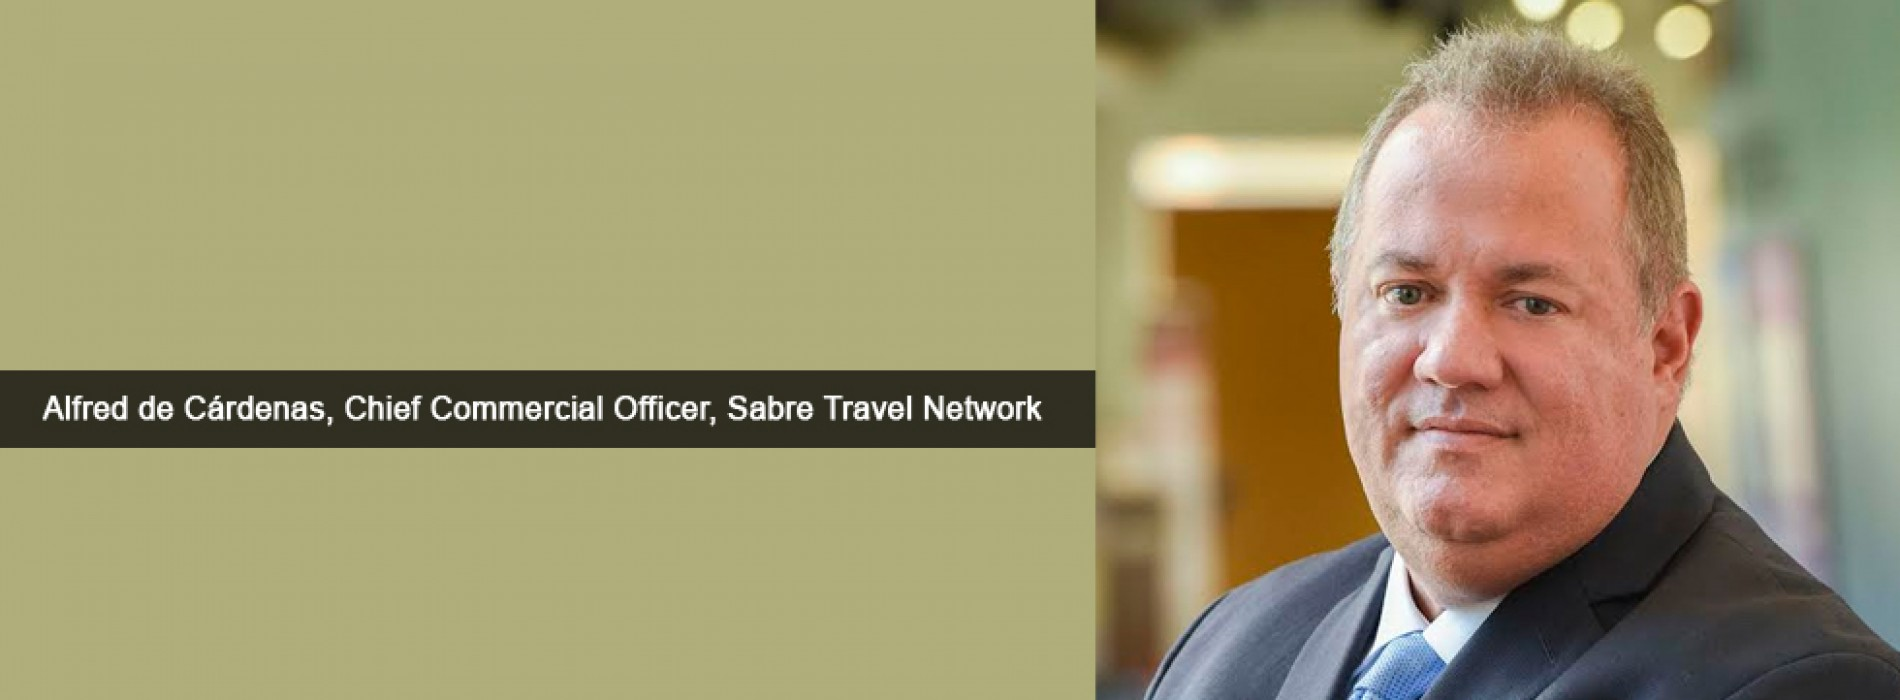 Sabre appoints Alfred de Cárdenas as Chief Commercial Officer for Travel Network